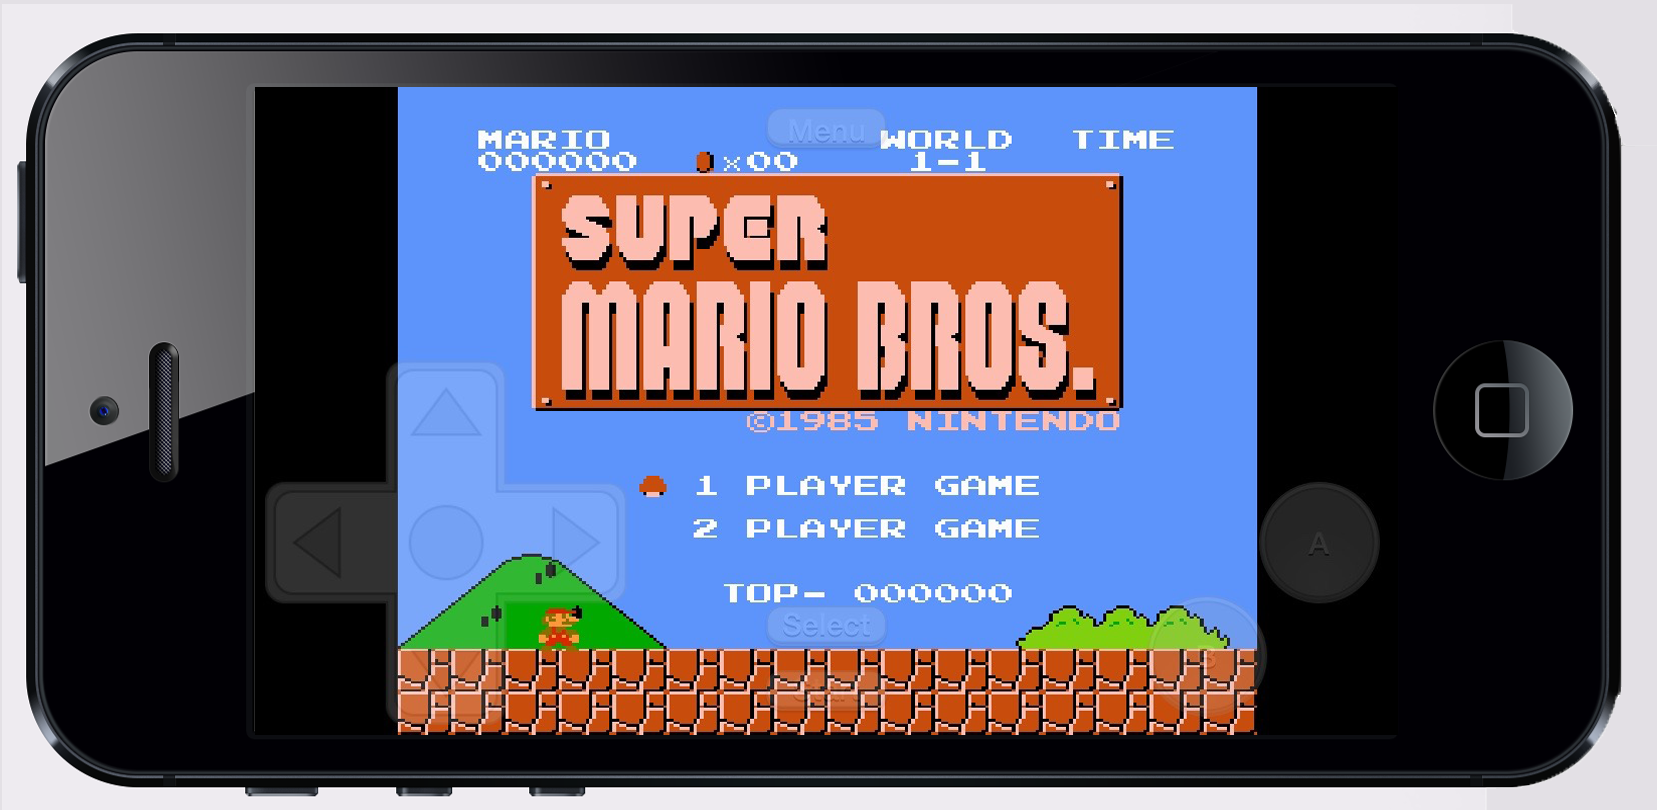 Provenance, un nuovo emulatore per i dispositivi Jailbroken_Supermario